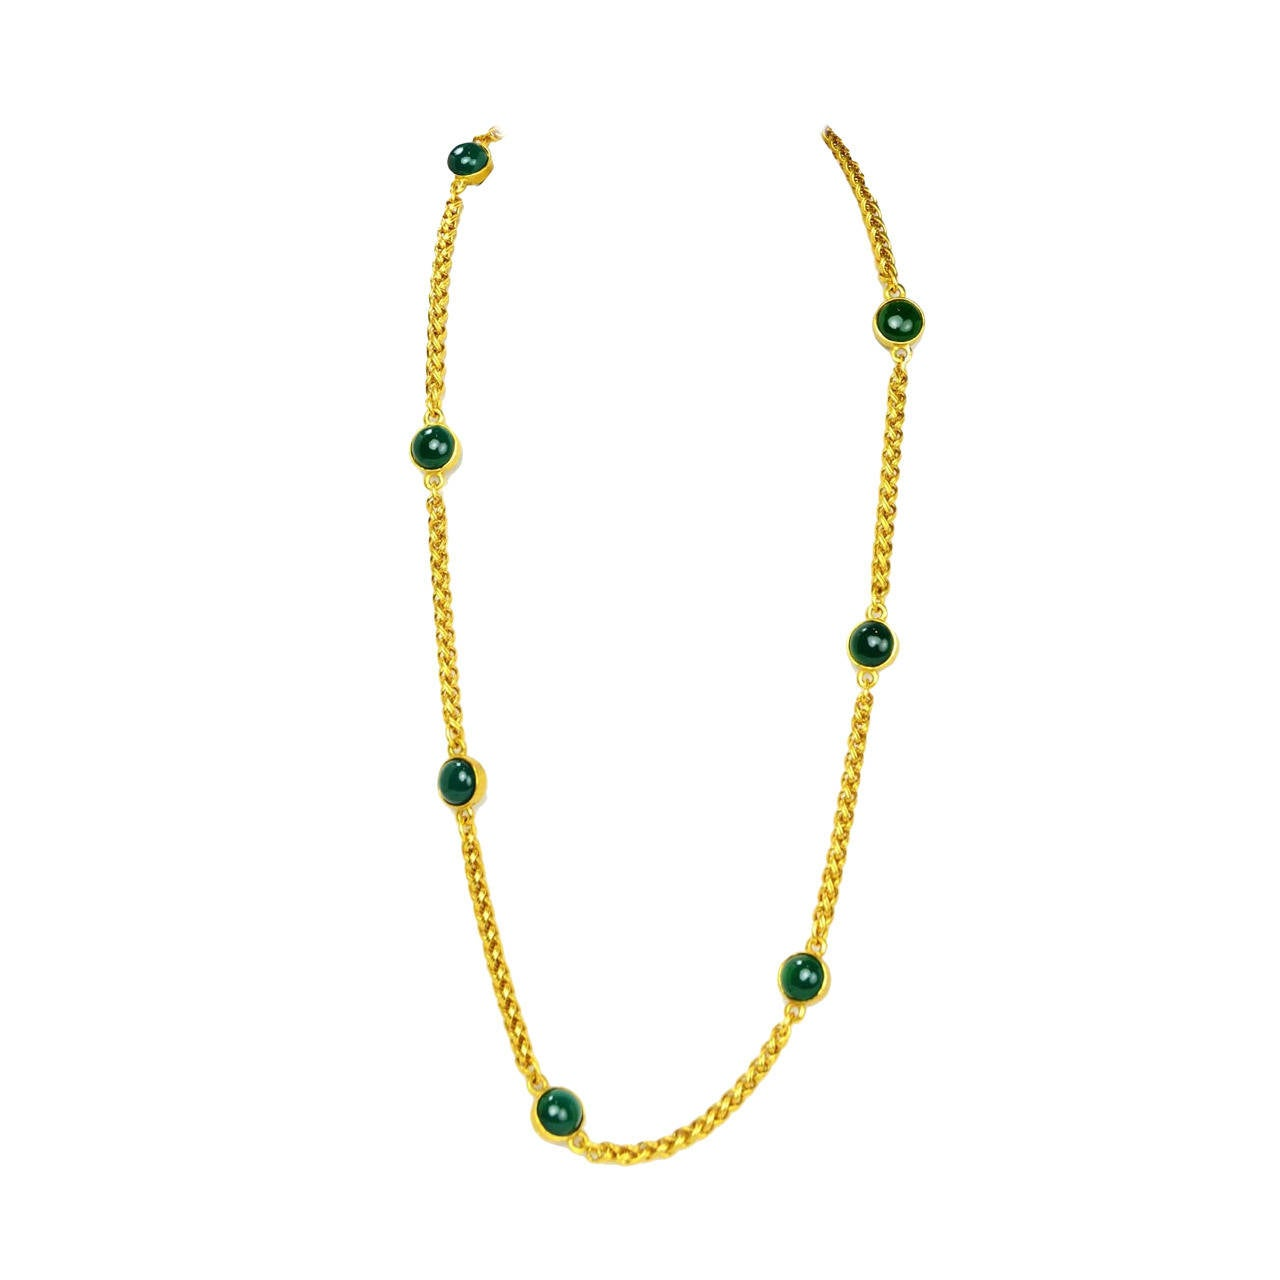 Chanel Vintage '95 Gold Link & Green Gripoix Necklace Gold chain features intricate braid detailing  Made in: France Year of Production: 1995 Stamp: 95 CC A Closure: Hook and eye closure Color: Goldtone and green Materials: Metal and glass Overall